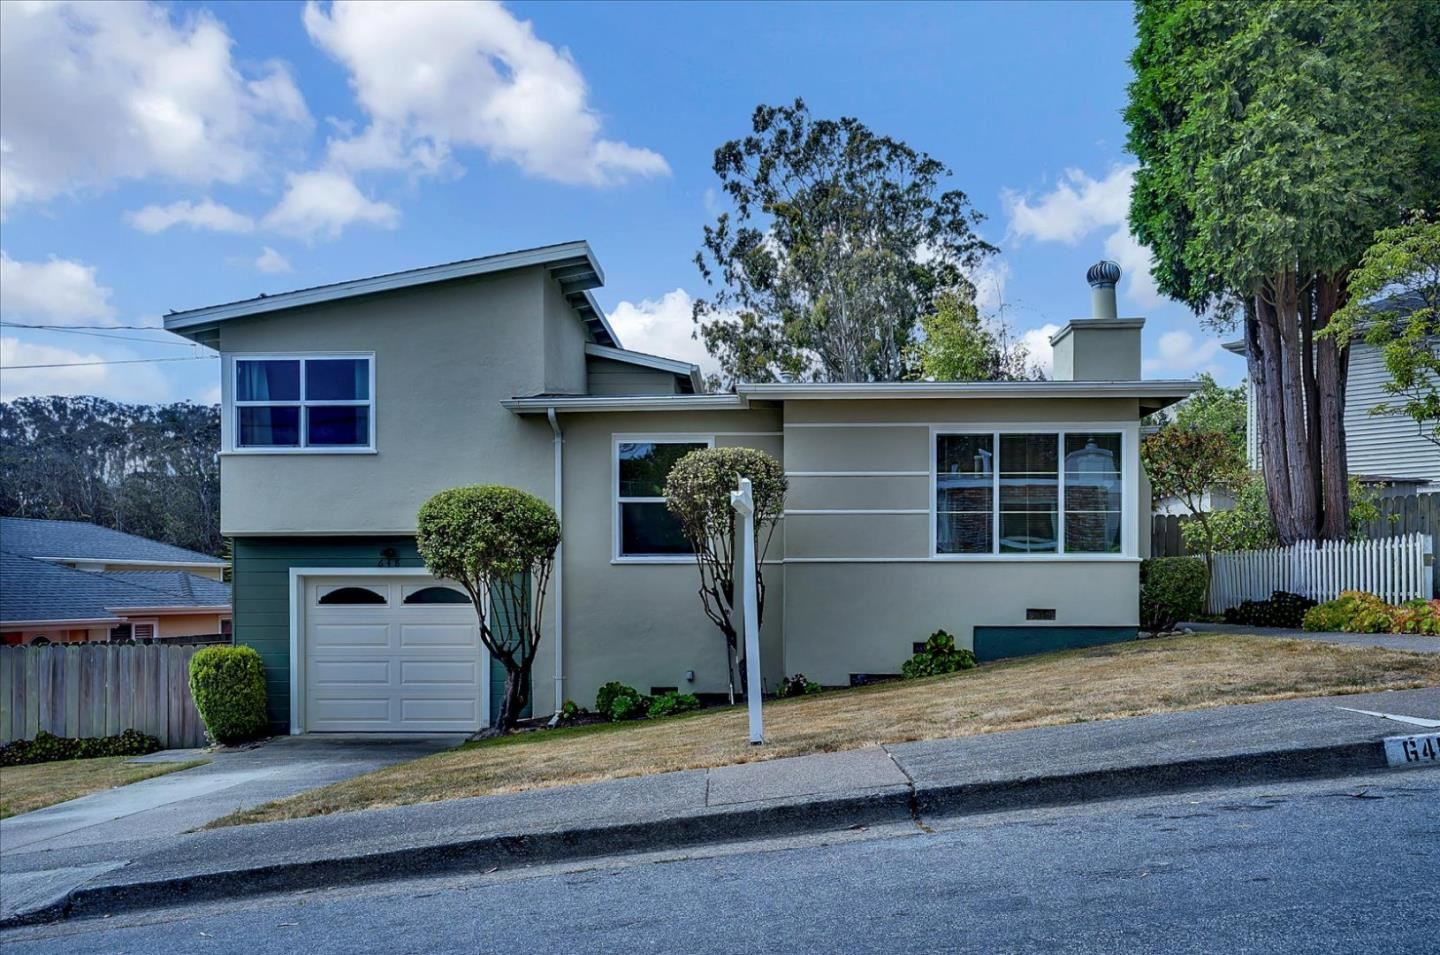 Photo for 648 Larchmont Drive, DALY CITY, CA 94015 (MLS # ML81847809)